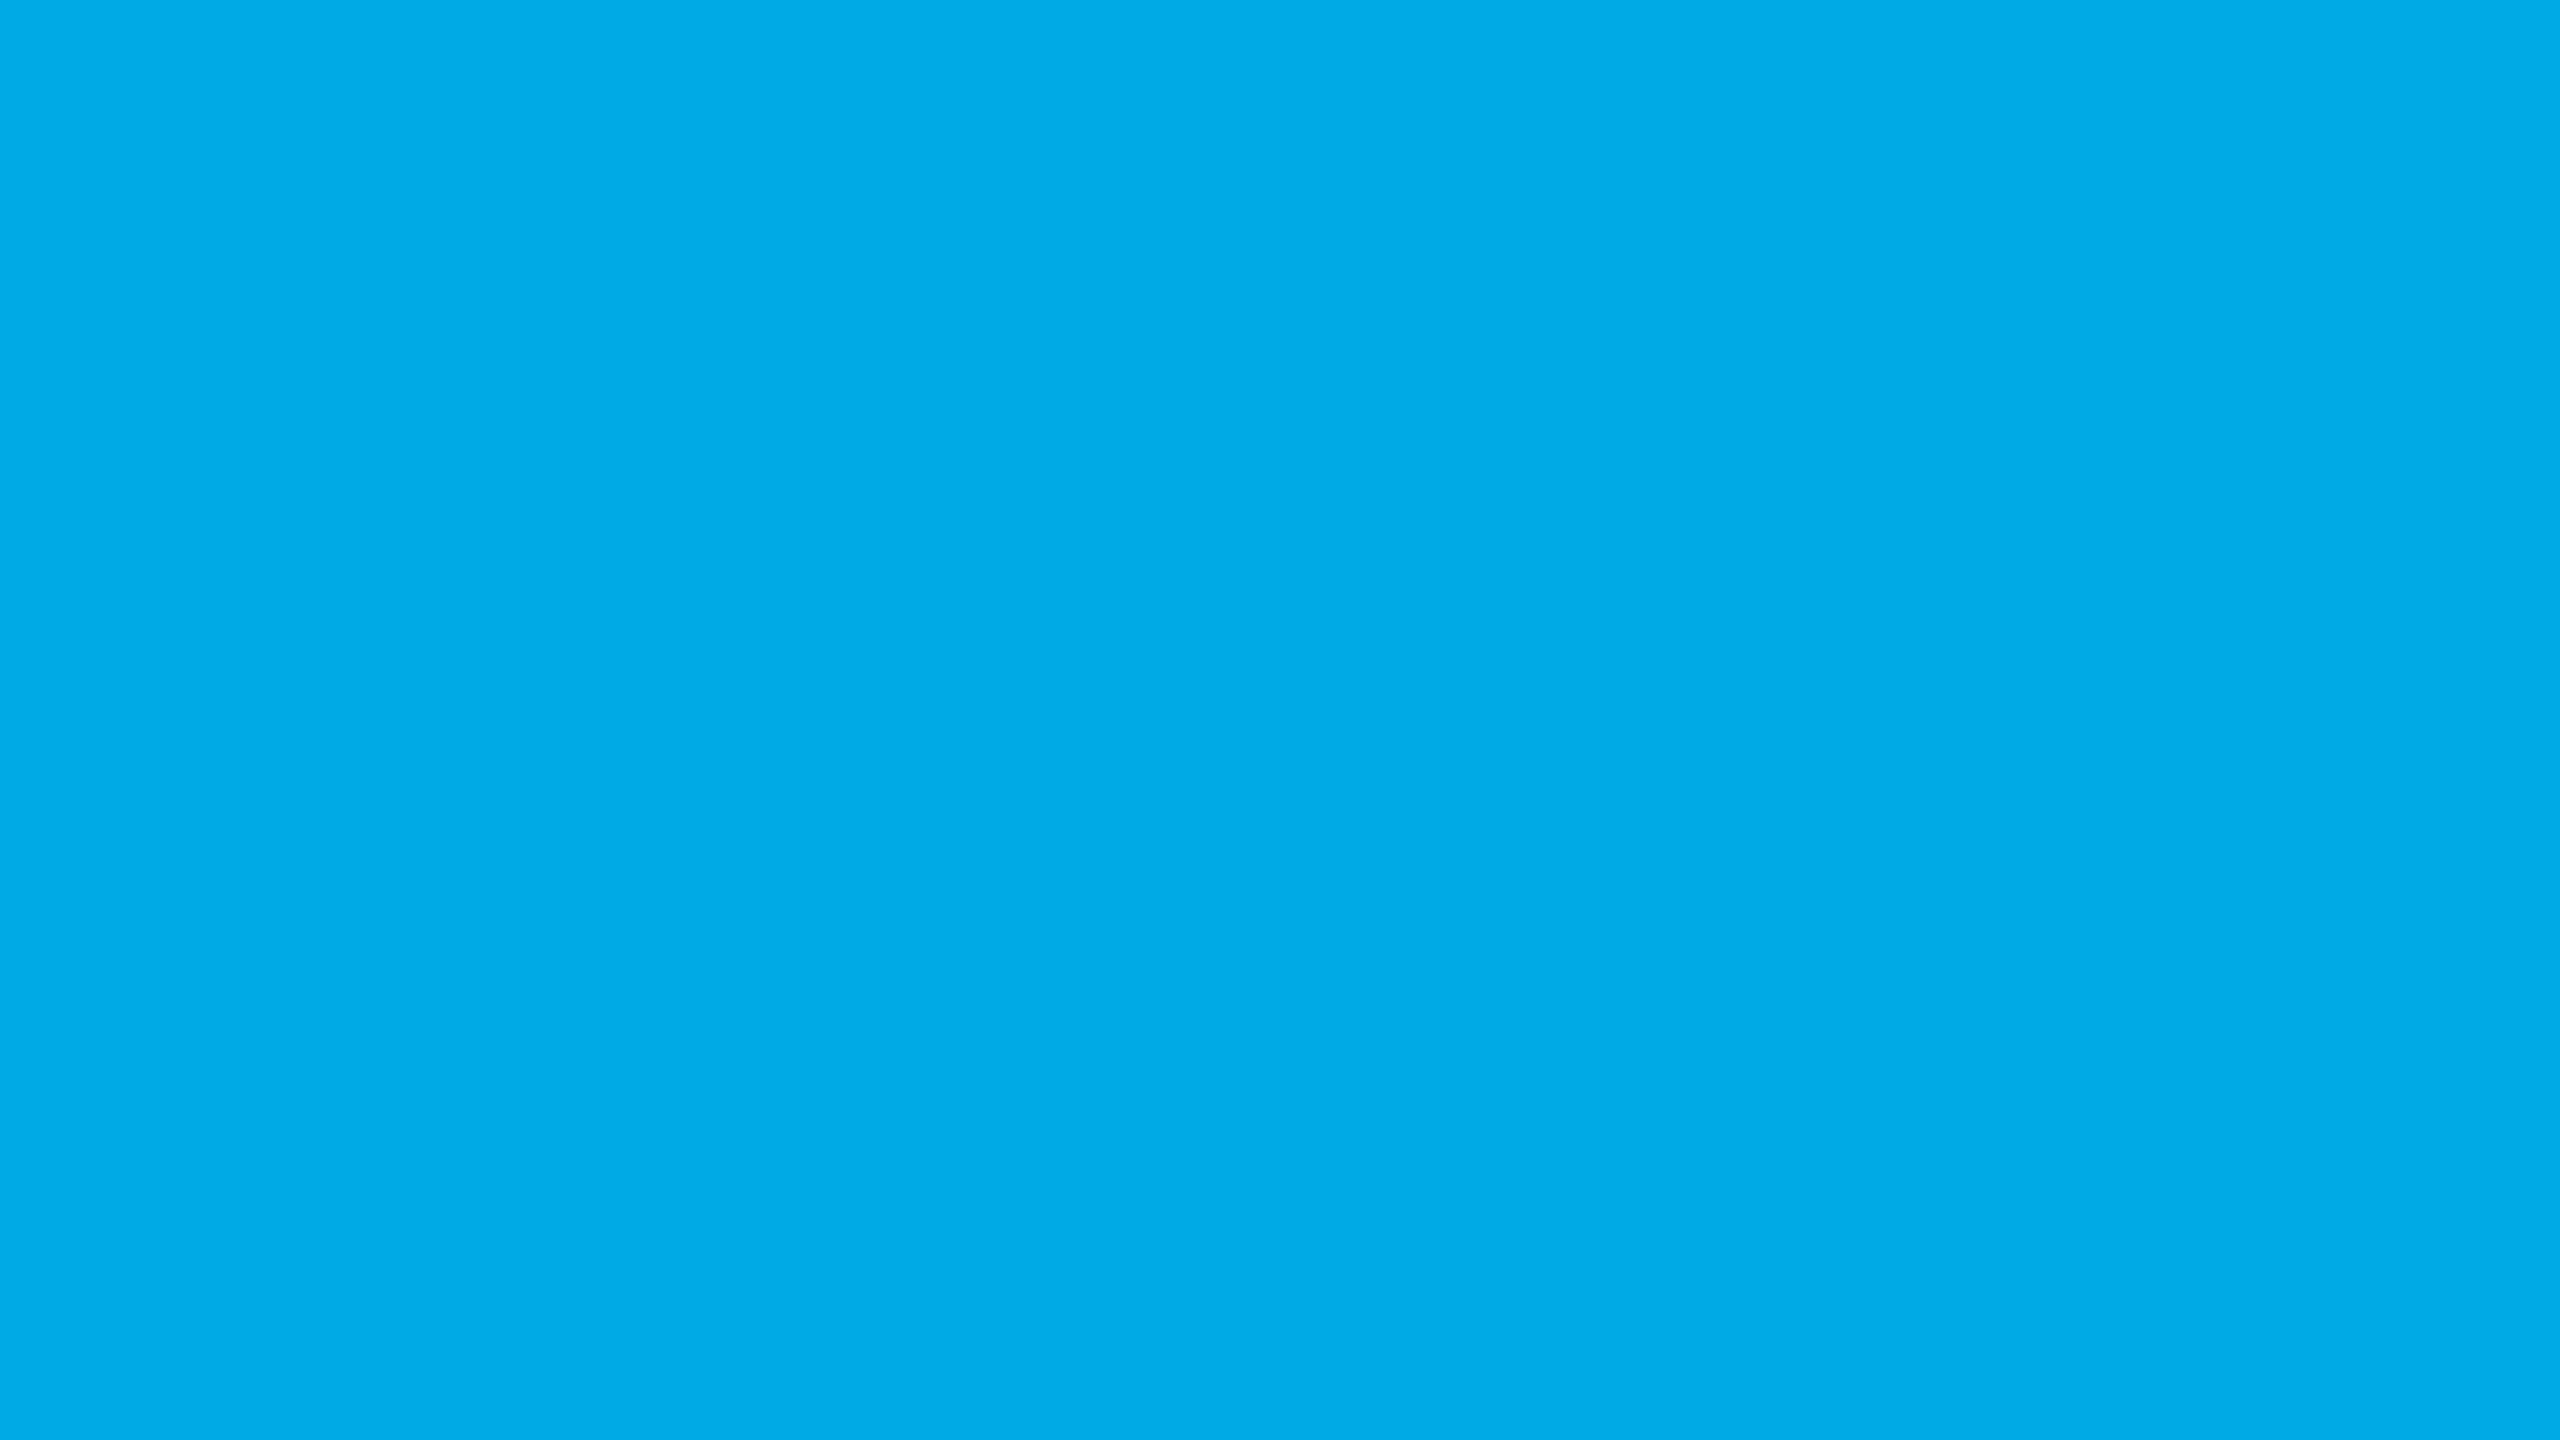 sky color background solid blue spanish wallpaper images 2560x1440